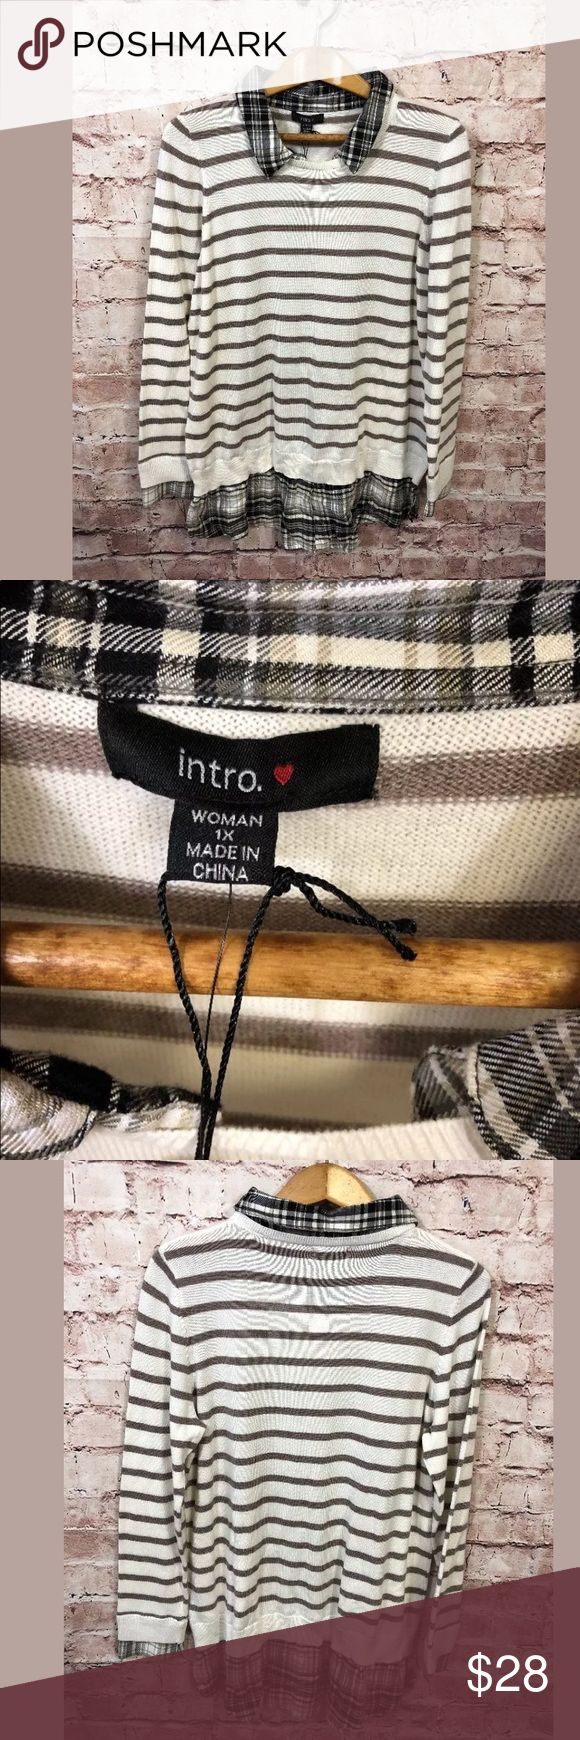 "Intro 1X Layered Sweater Plaid Stripe Twofer Tan New. Smoke free.  One piece.  Chest 44"" - will stretch  Length 32""  W20 Intro Woman Plus Size 1X Layered Sweater Plaid Stripe Twofer Tan intro Sweaters Crew & Scoop Necks"